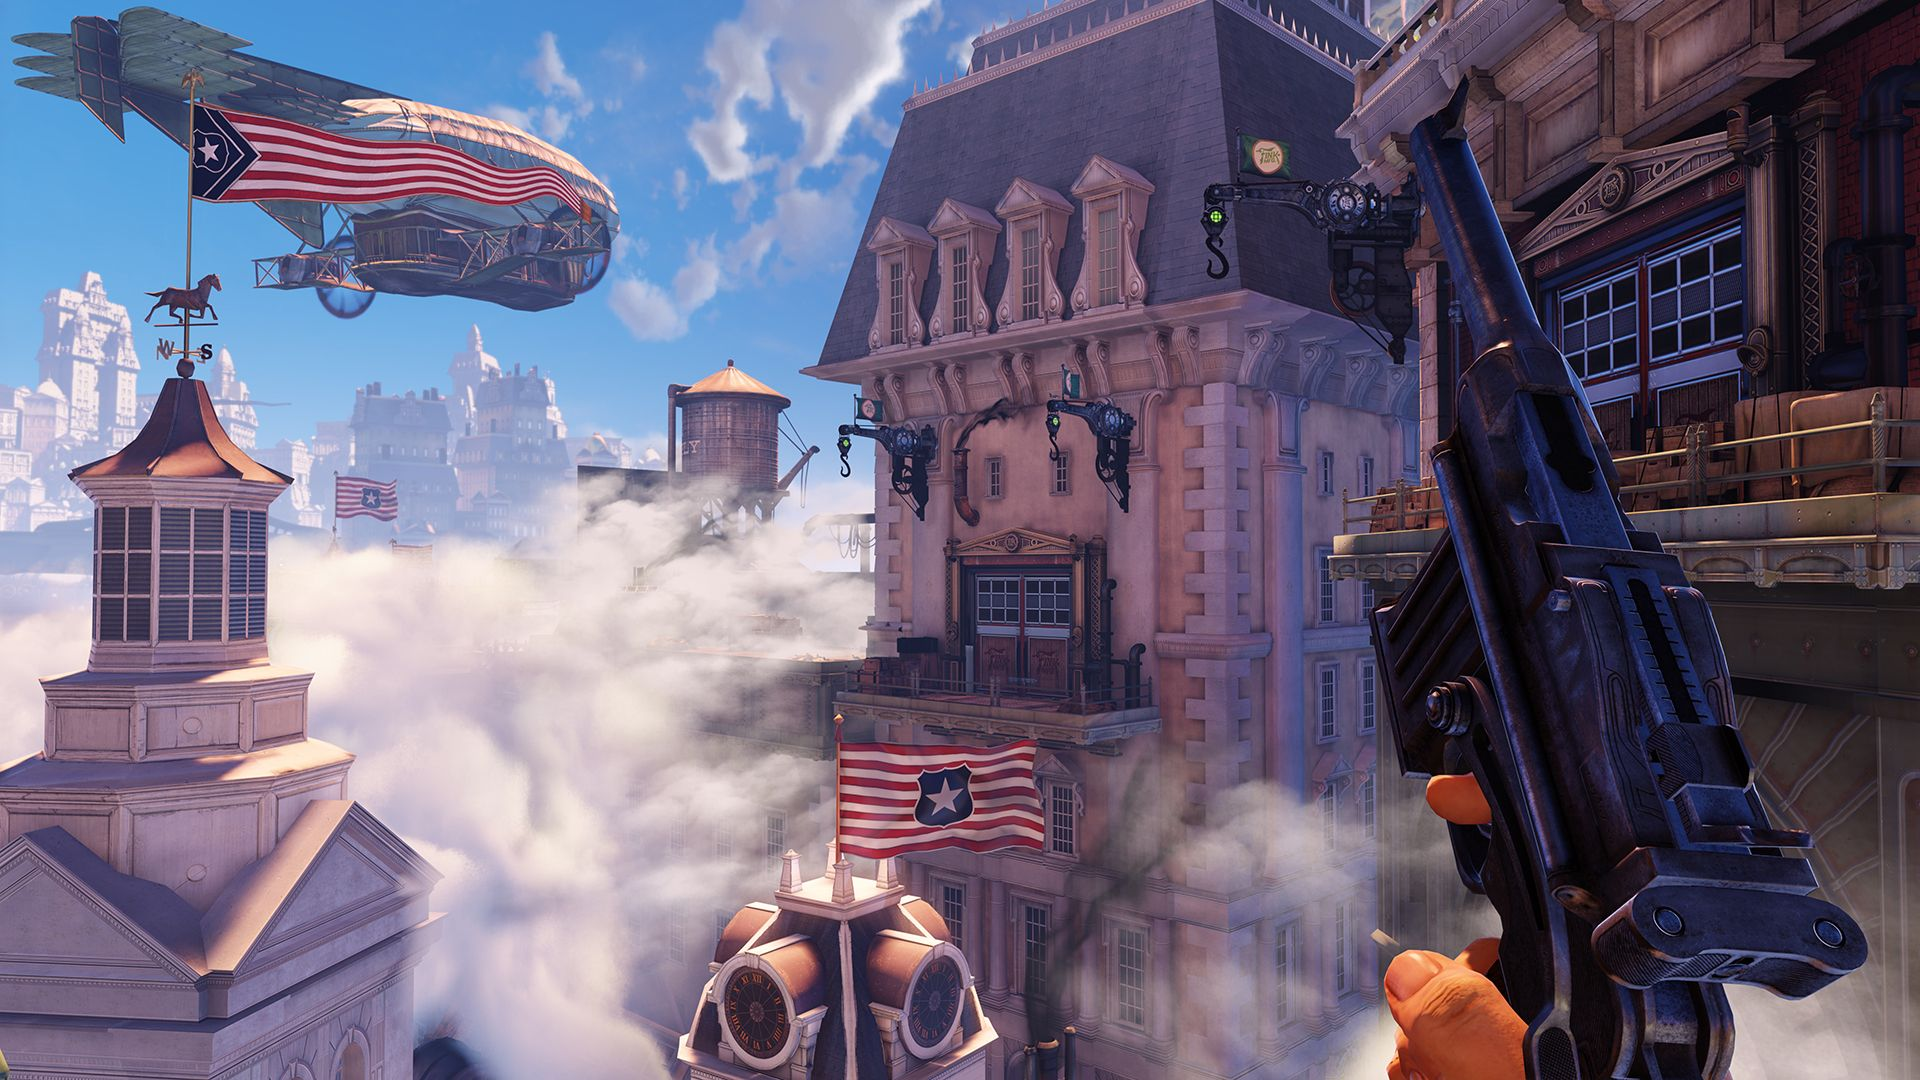 BioShock Infinite - the thinking man's shooter